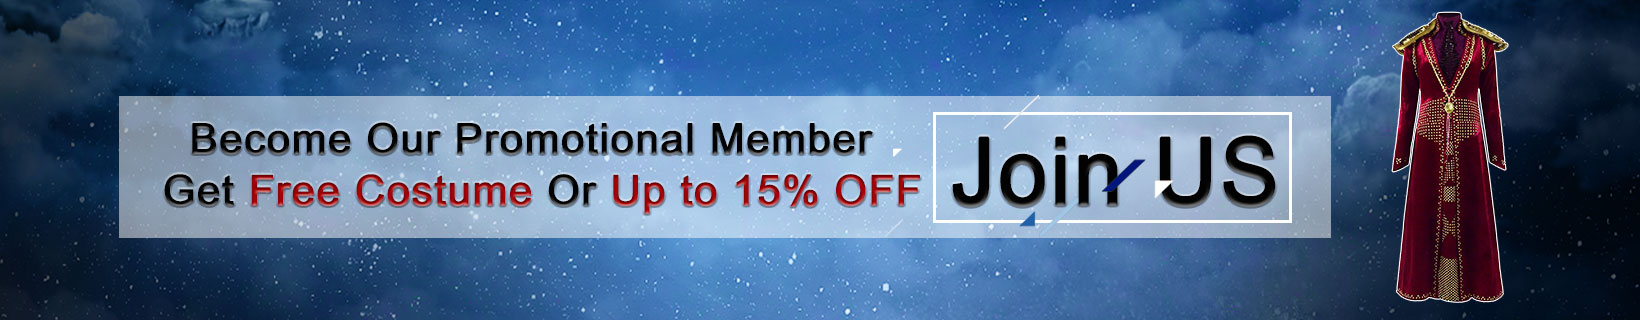 Become Our Promotional Member Get Free Costume and Up to 15% OFF